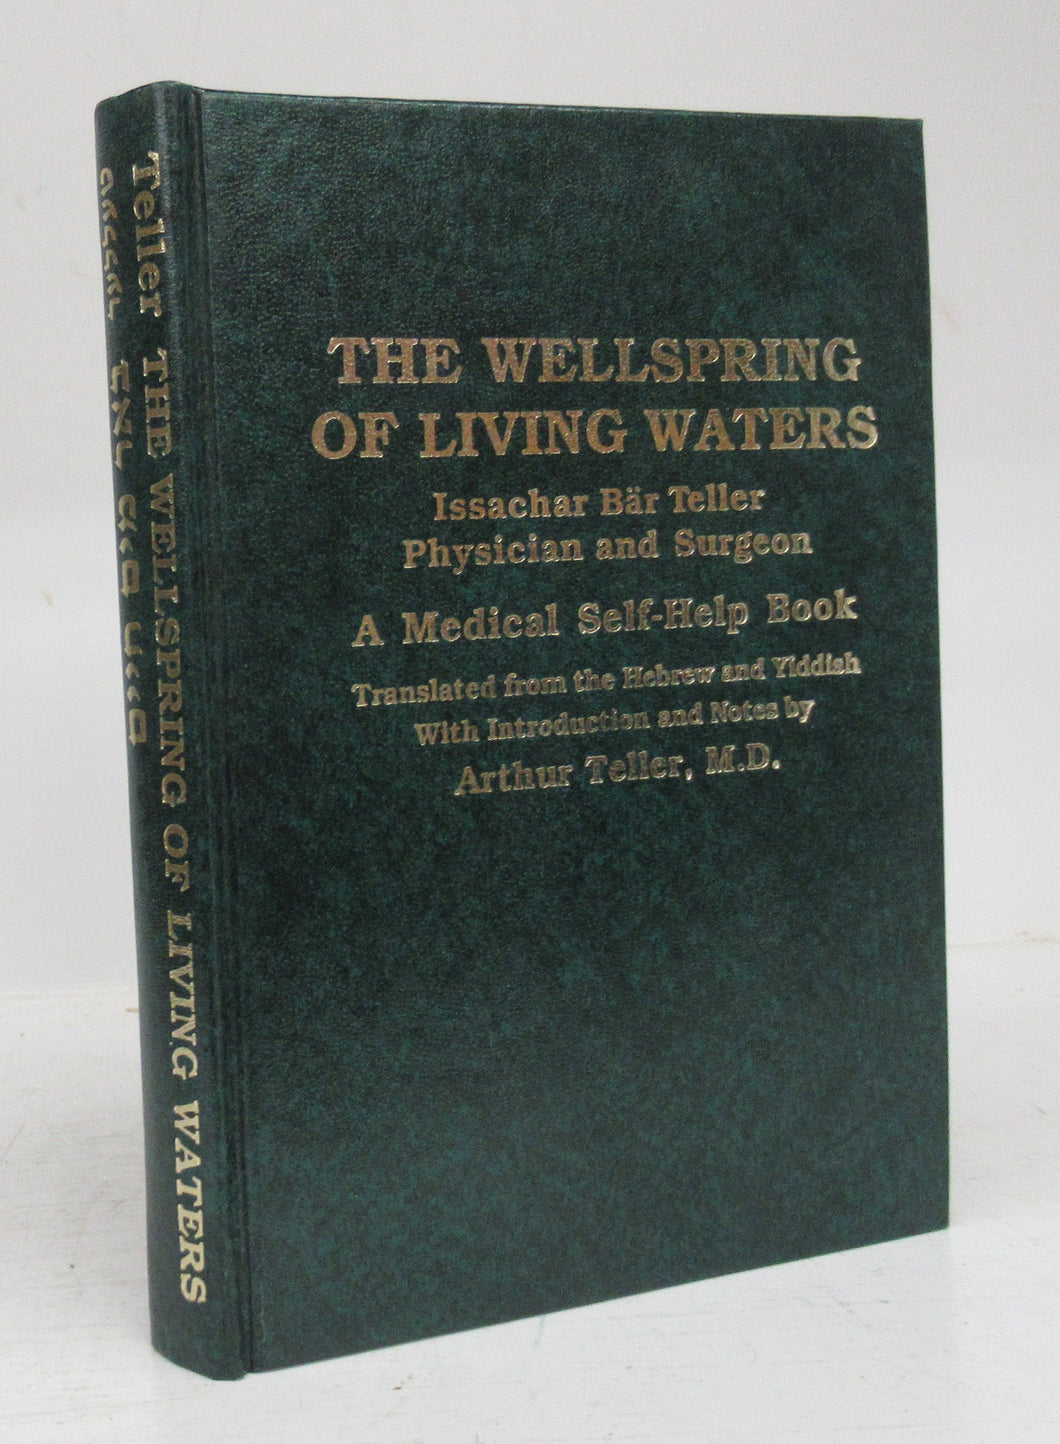 The Wellspring of Living Waters: Issachar Br Teller, Physician and Surgeon